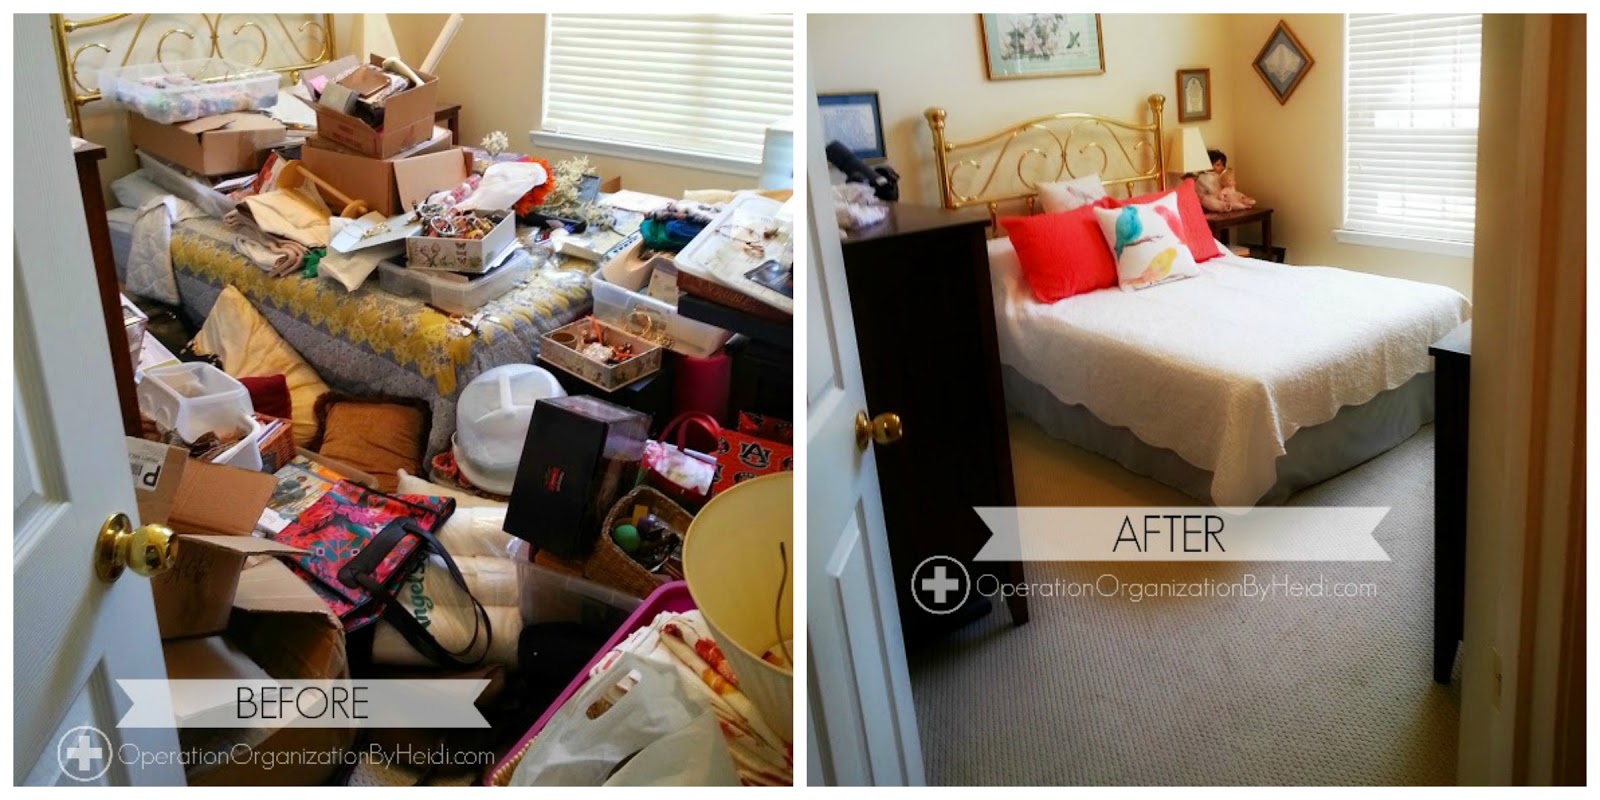 This Client Called On Operation Organization By Heidi For Support In Their Guest Bedroom